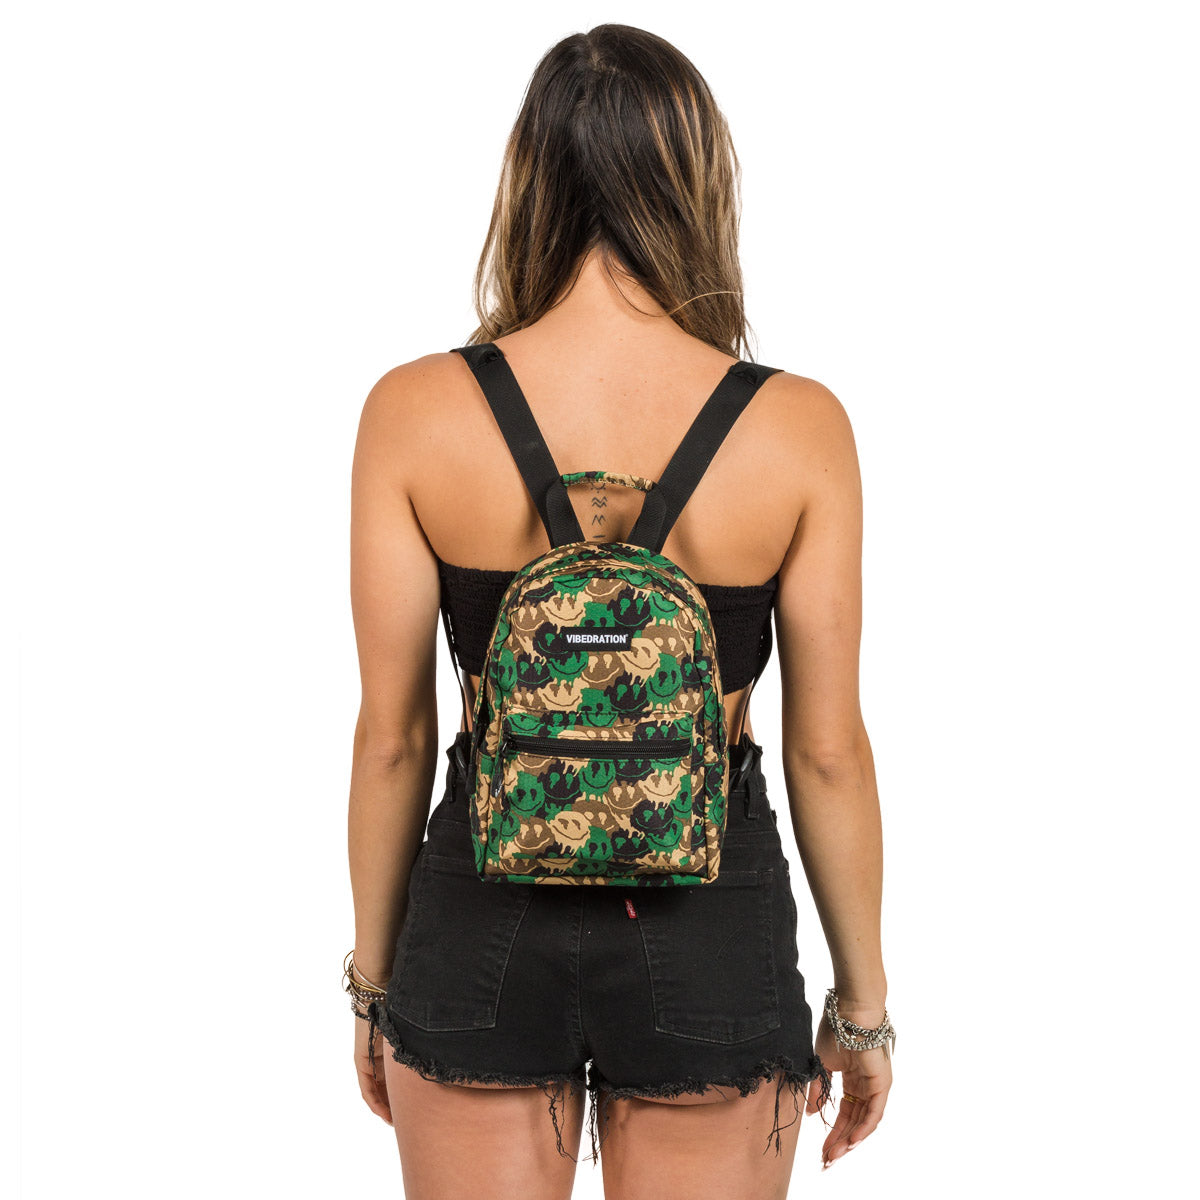 Trippy Camo Mini Backpack for Raves and Festivals